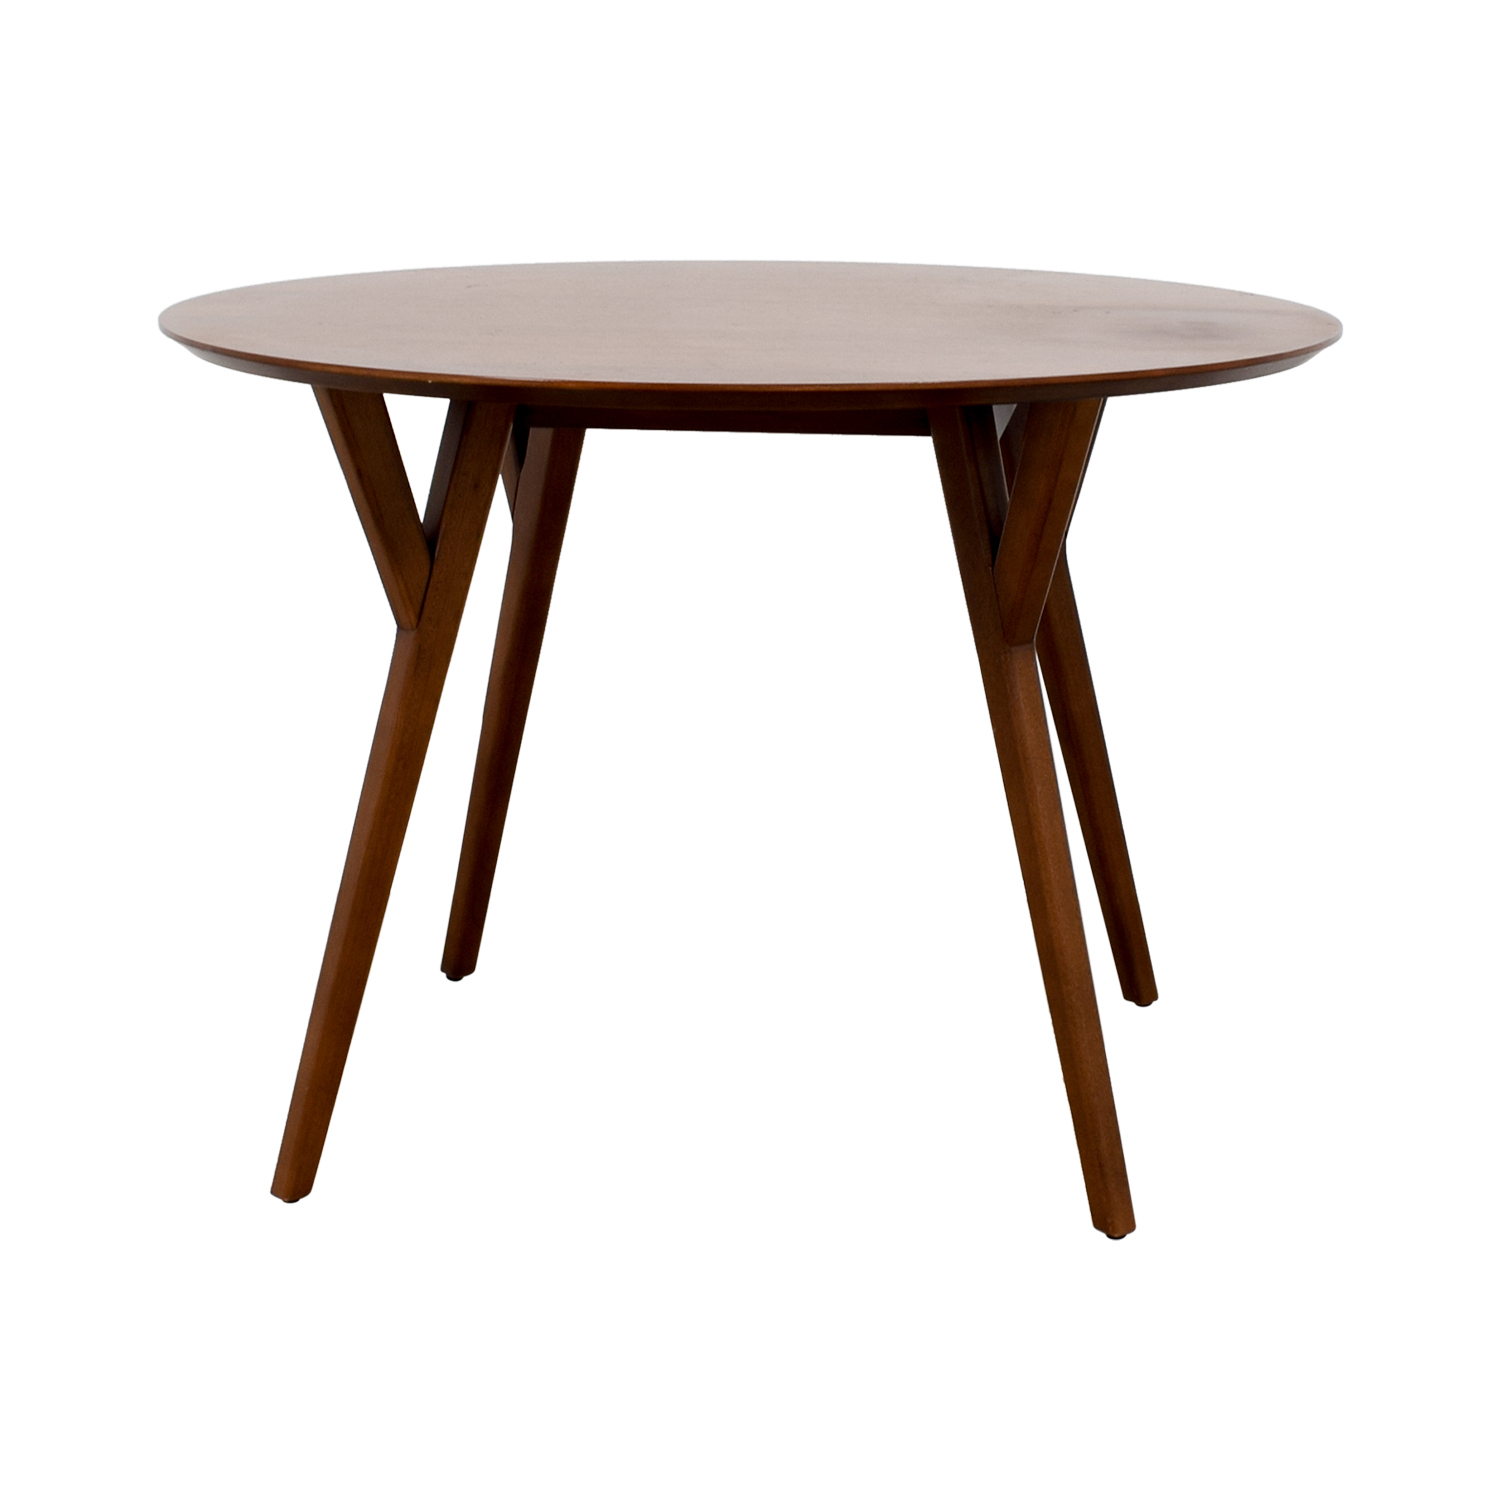 79% Off – West Elm West Elm Round Wood Dining Table / Tables Regarding 2017 West Dining Tables (Image 5 of 25)